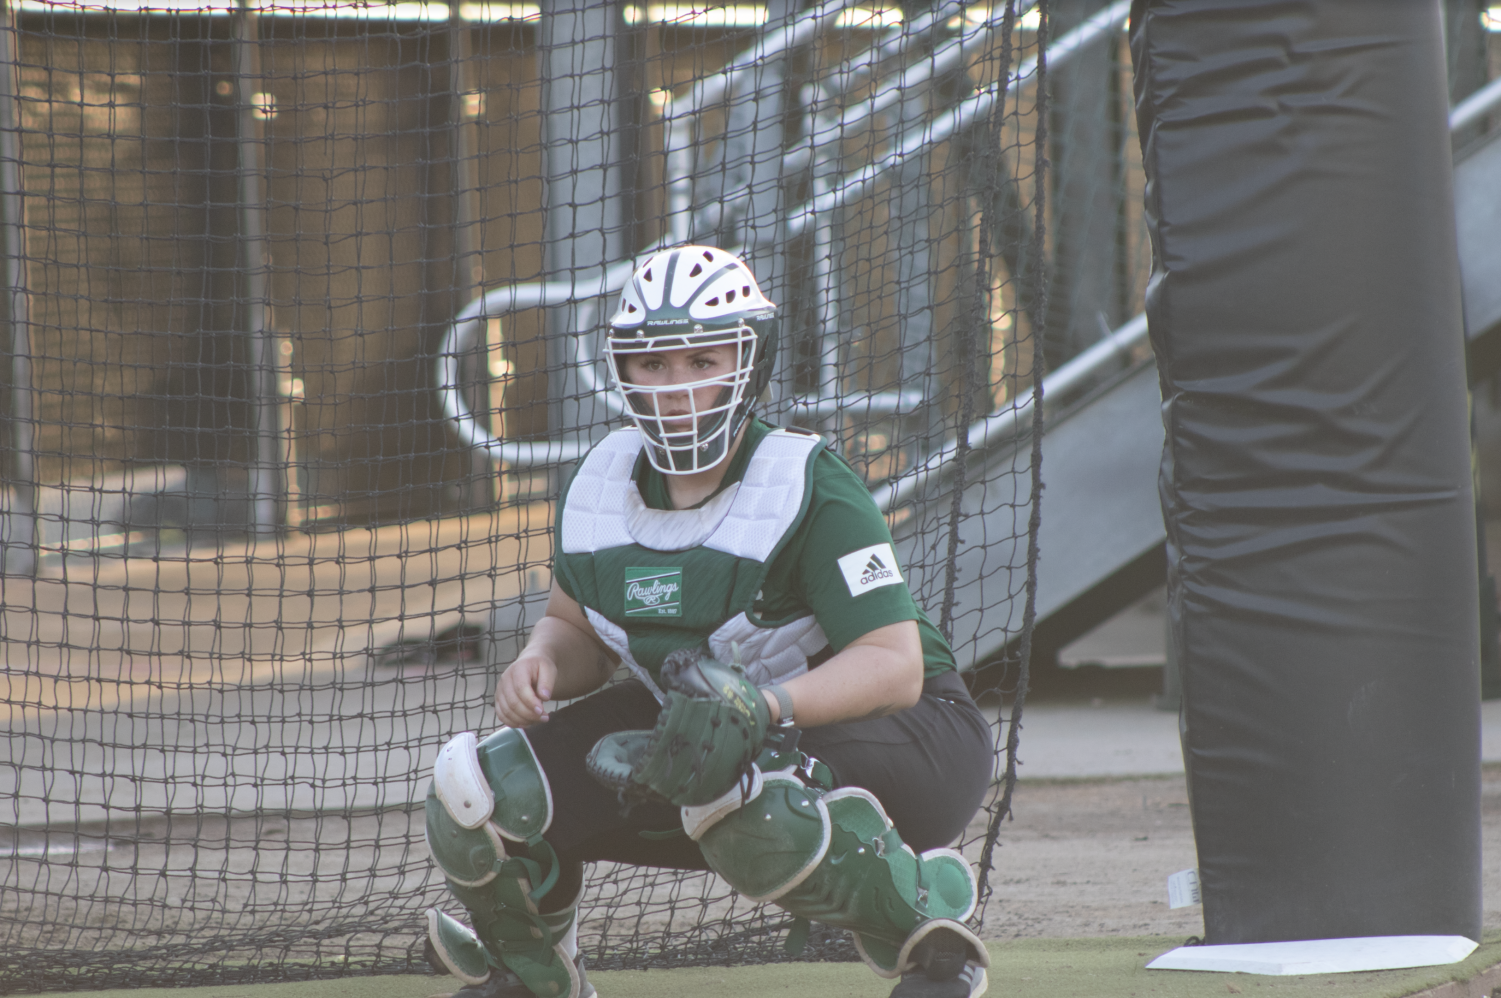 Sac State senior catcher Jessica Scott receives the ball from senior pitcher Jensen Main during practice on Thursday, Jan. 30. The Hornets begin their season Friday at Shea Stadium.